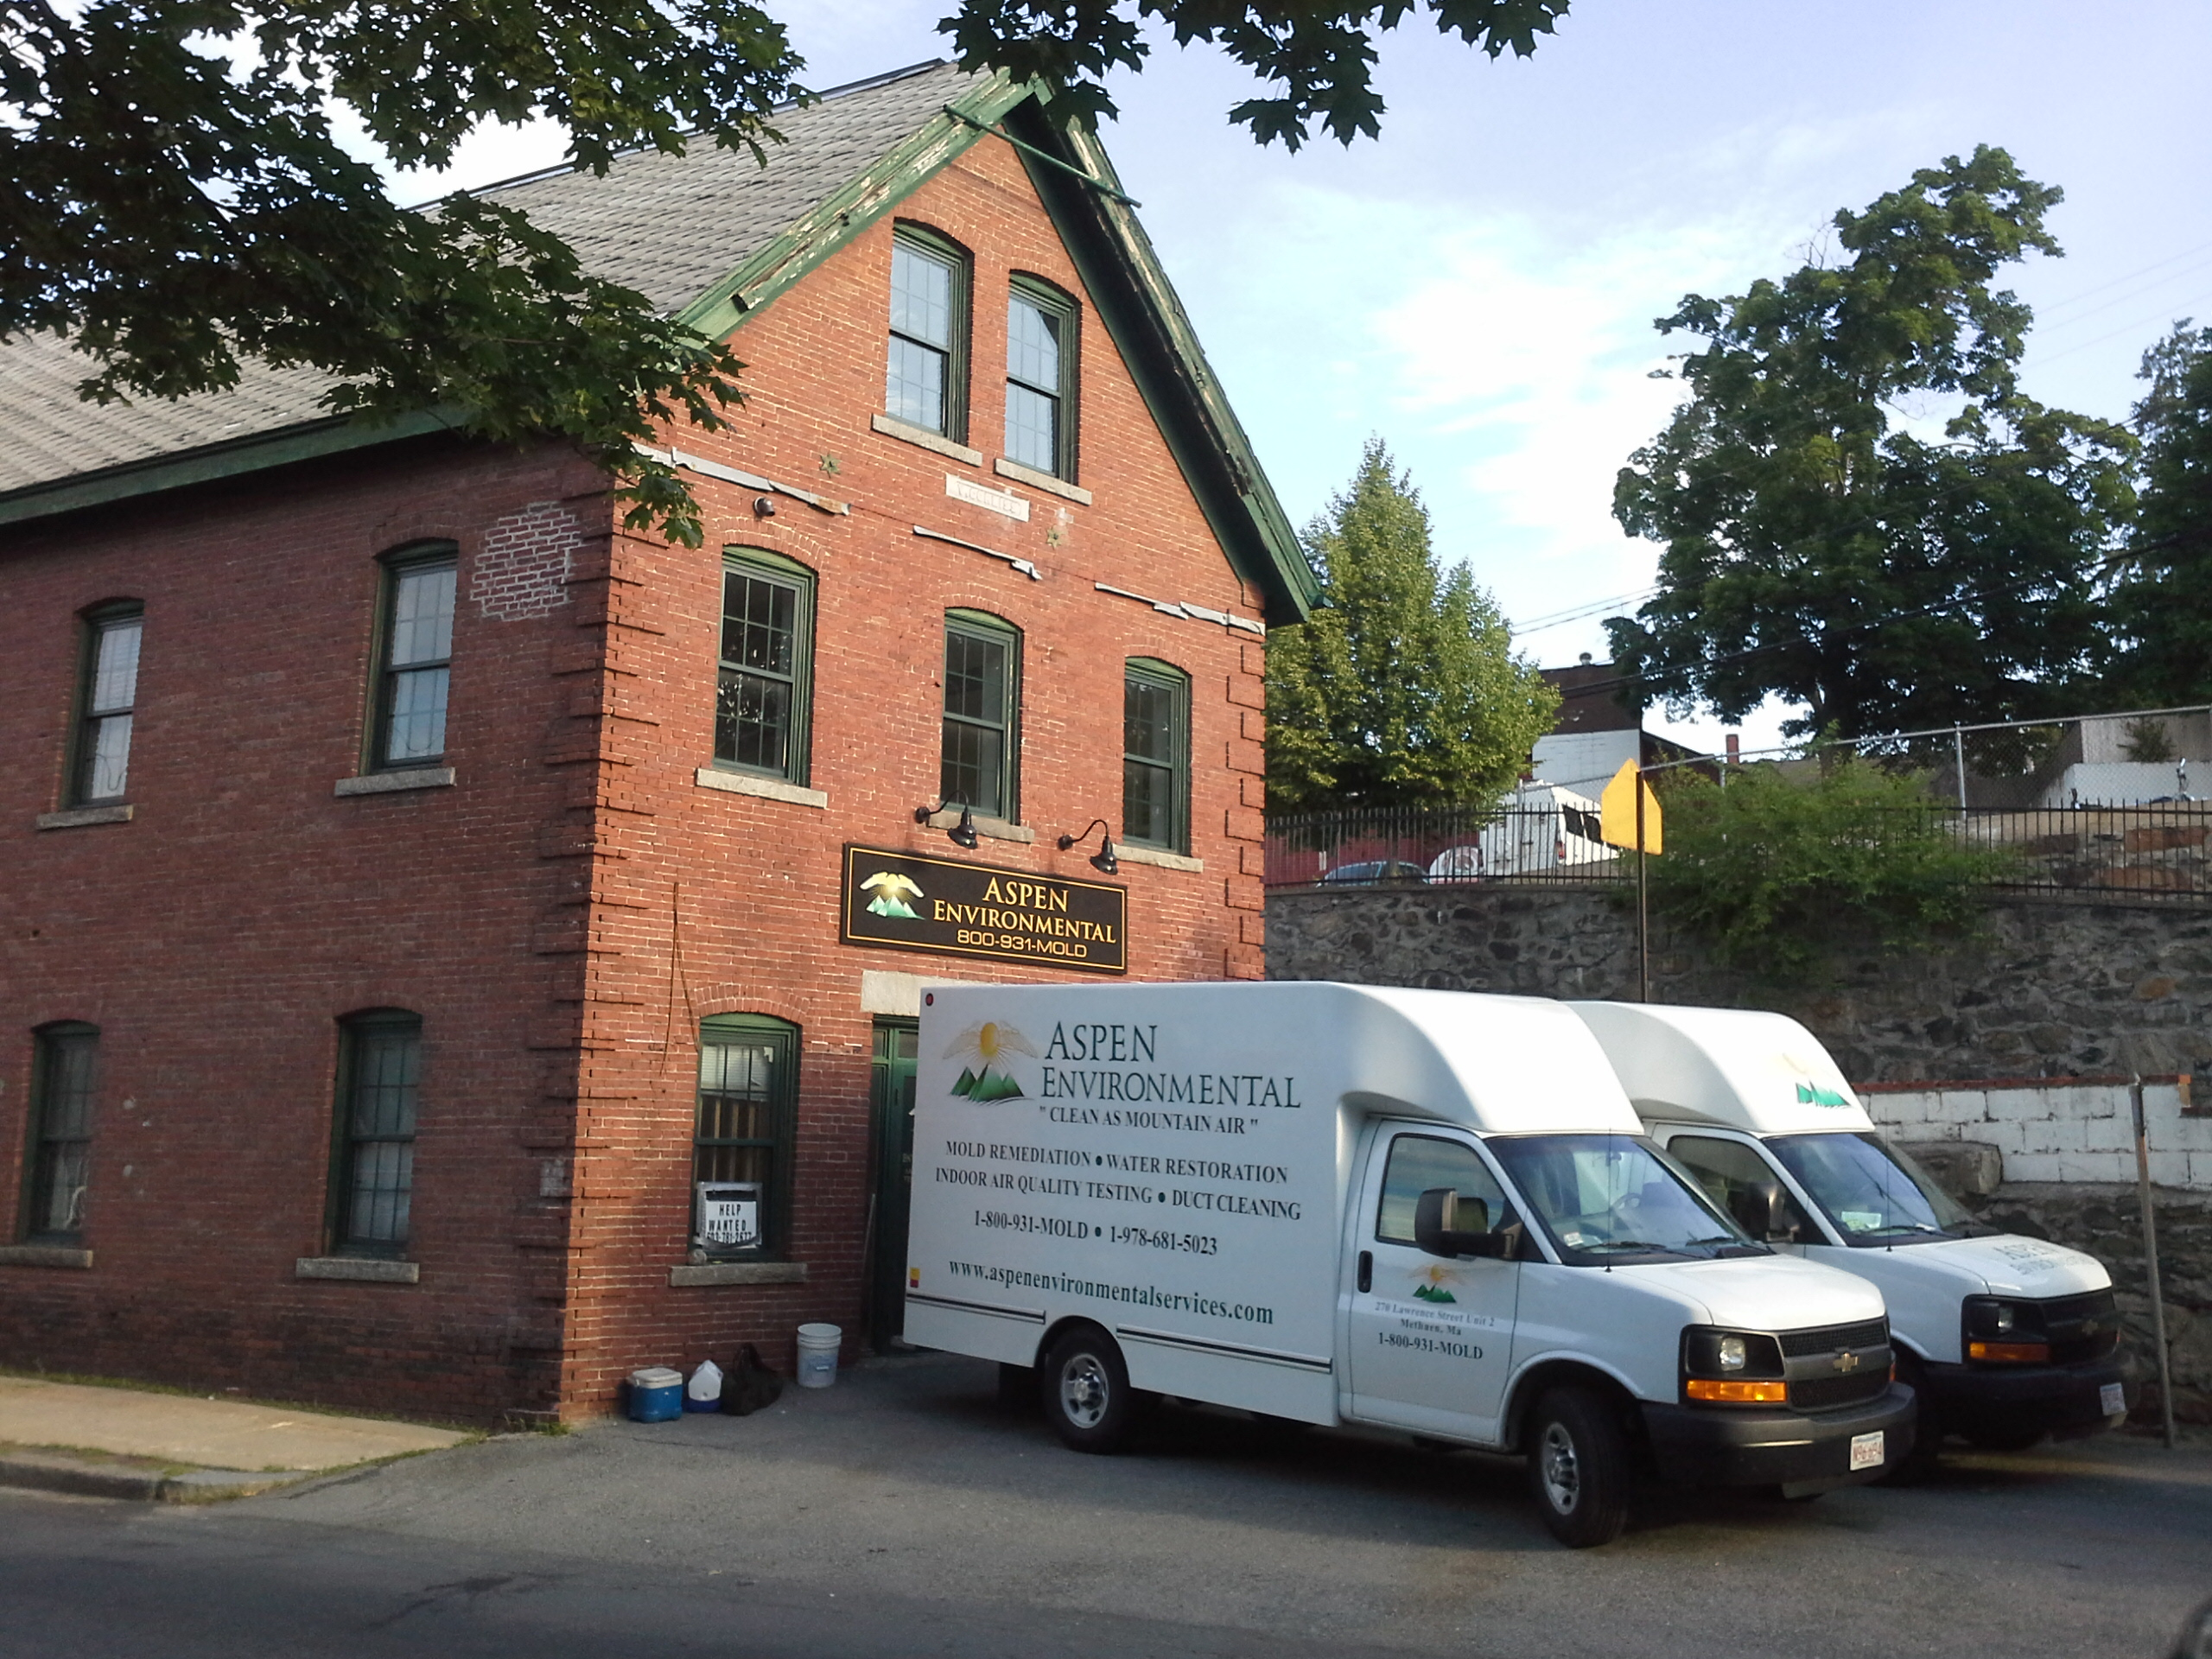 Water Damage Repair in Tewksbury MA